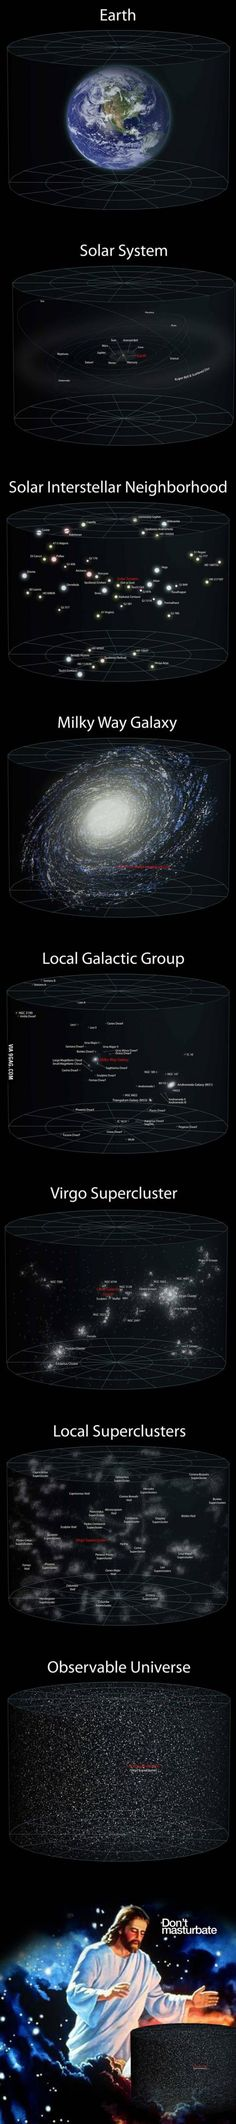 Earth, solar system, solar interstellar neighborhood, Milky Way galaxy, local galactic group, Virgo supercluster, local superclusters, observable universe. Don't masturbate.